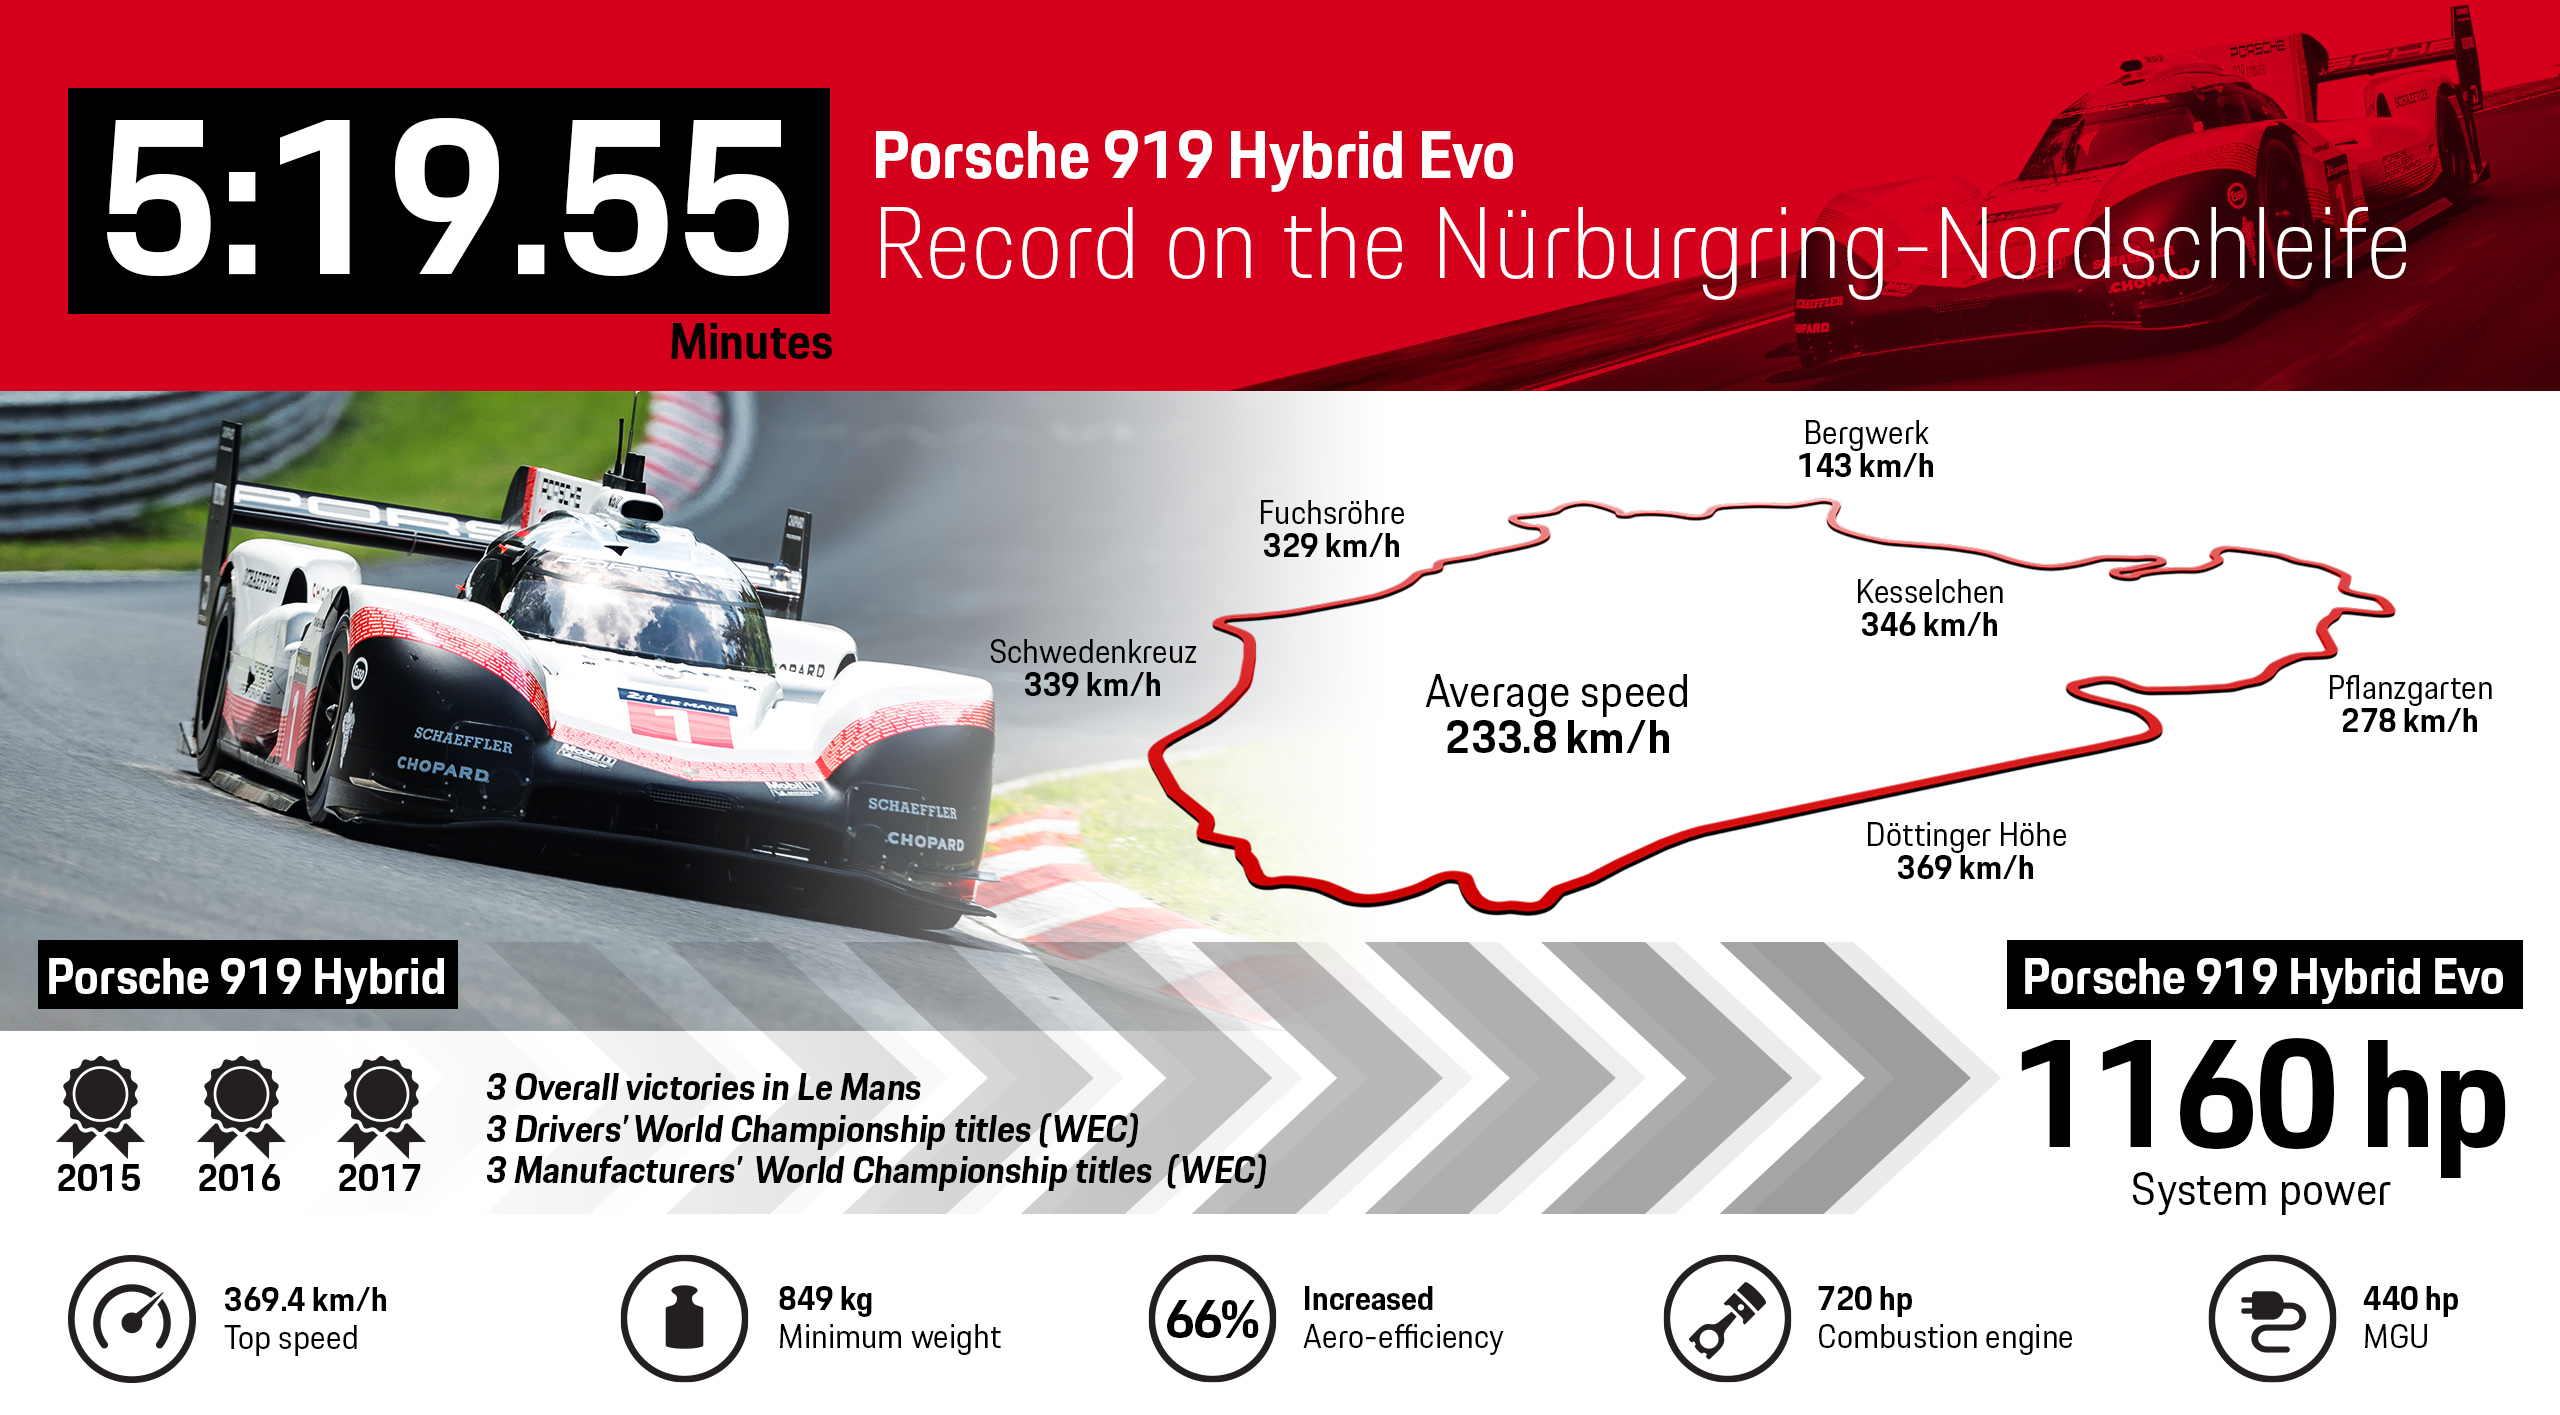 The Evo Version Is Based On 919 Hybrid Race Car